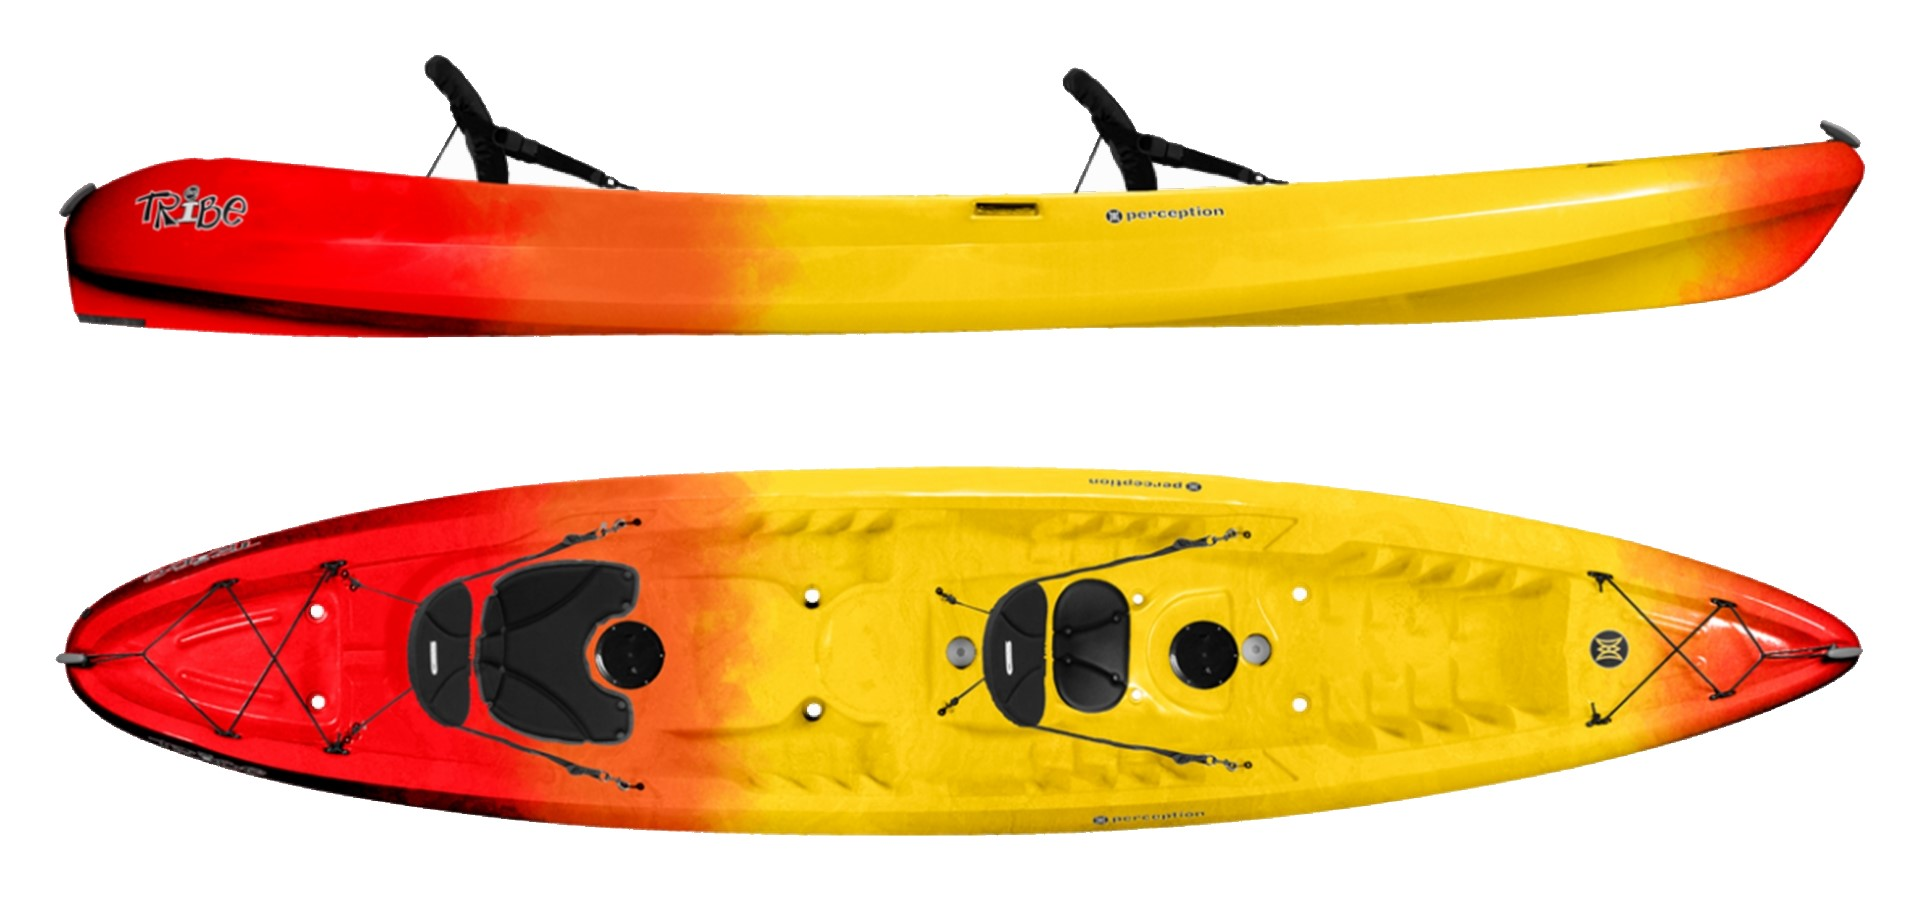 Rental Kayaks | Adventure Sports Rentals